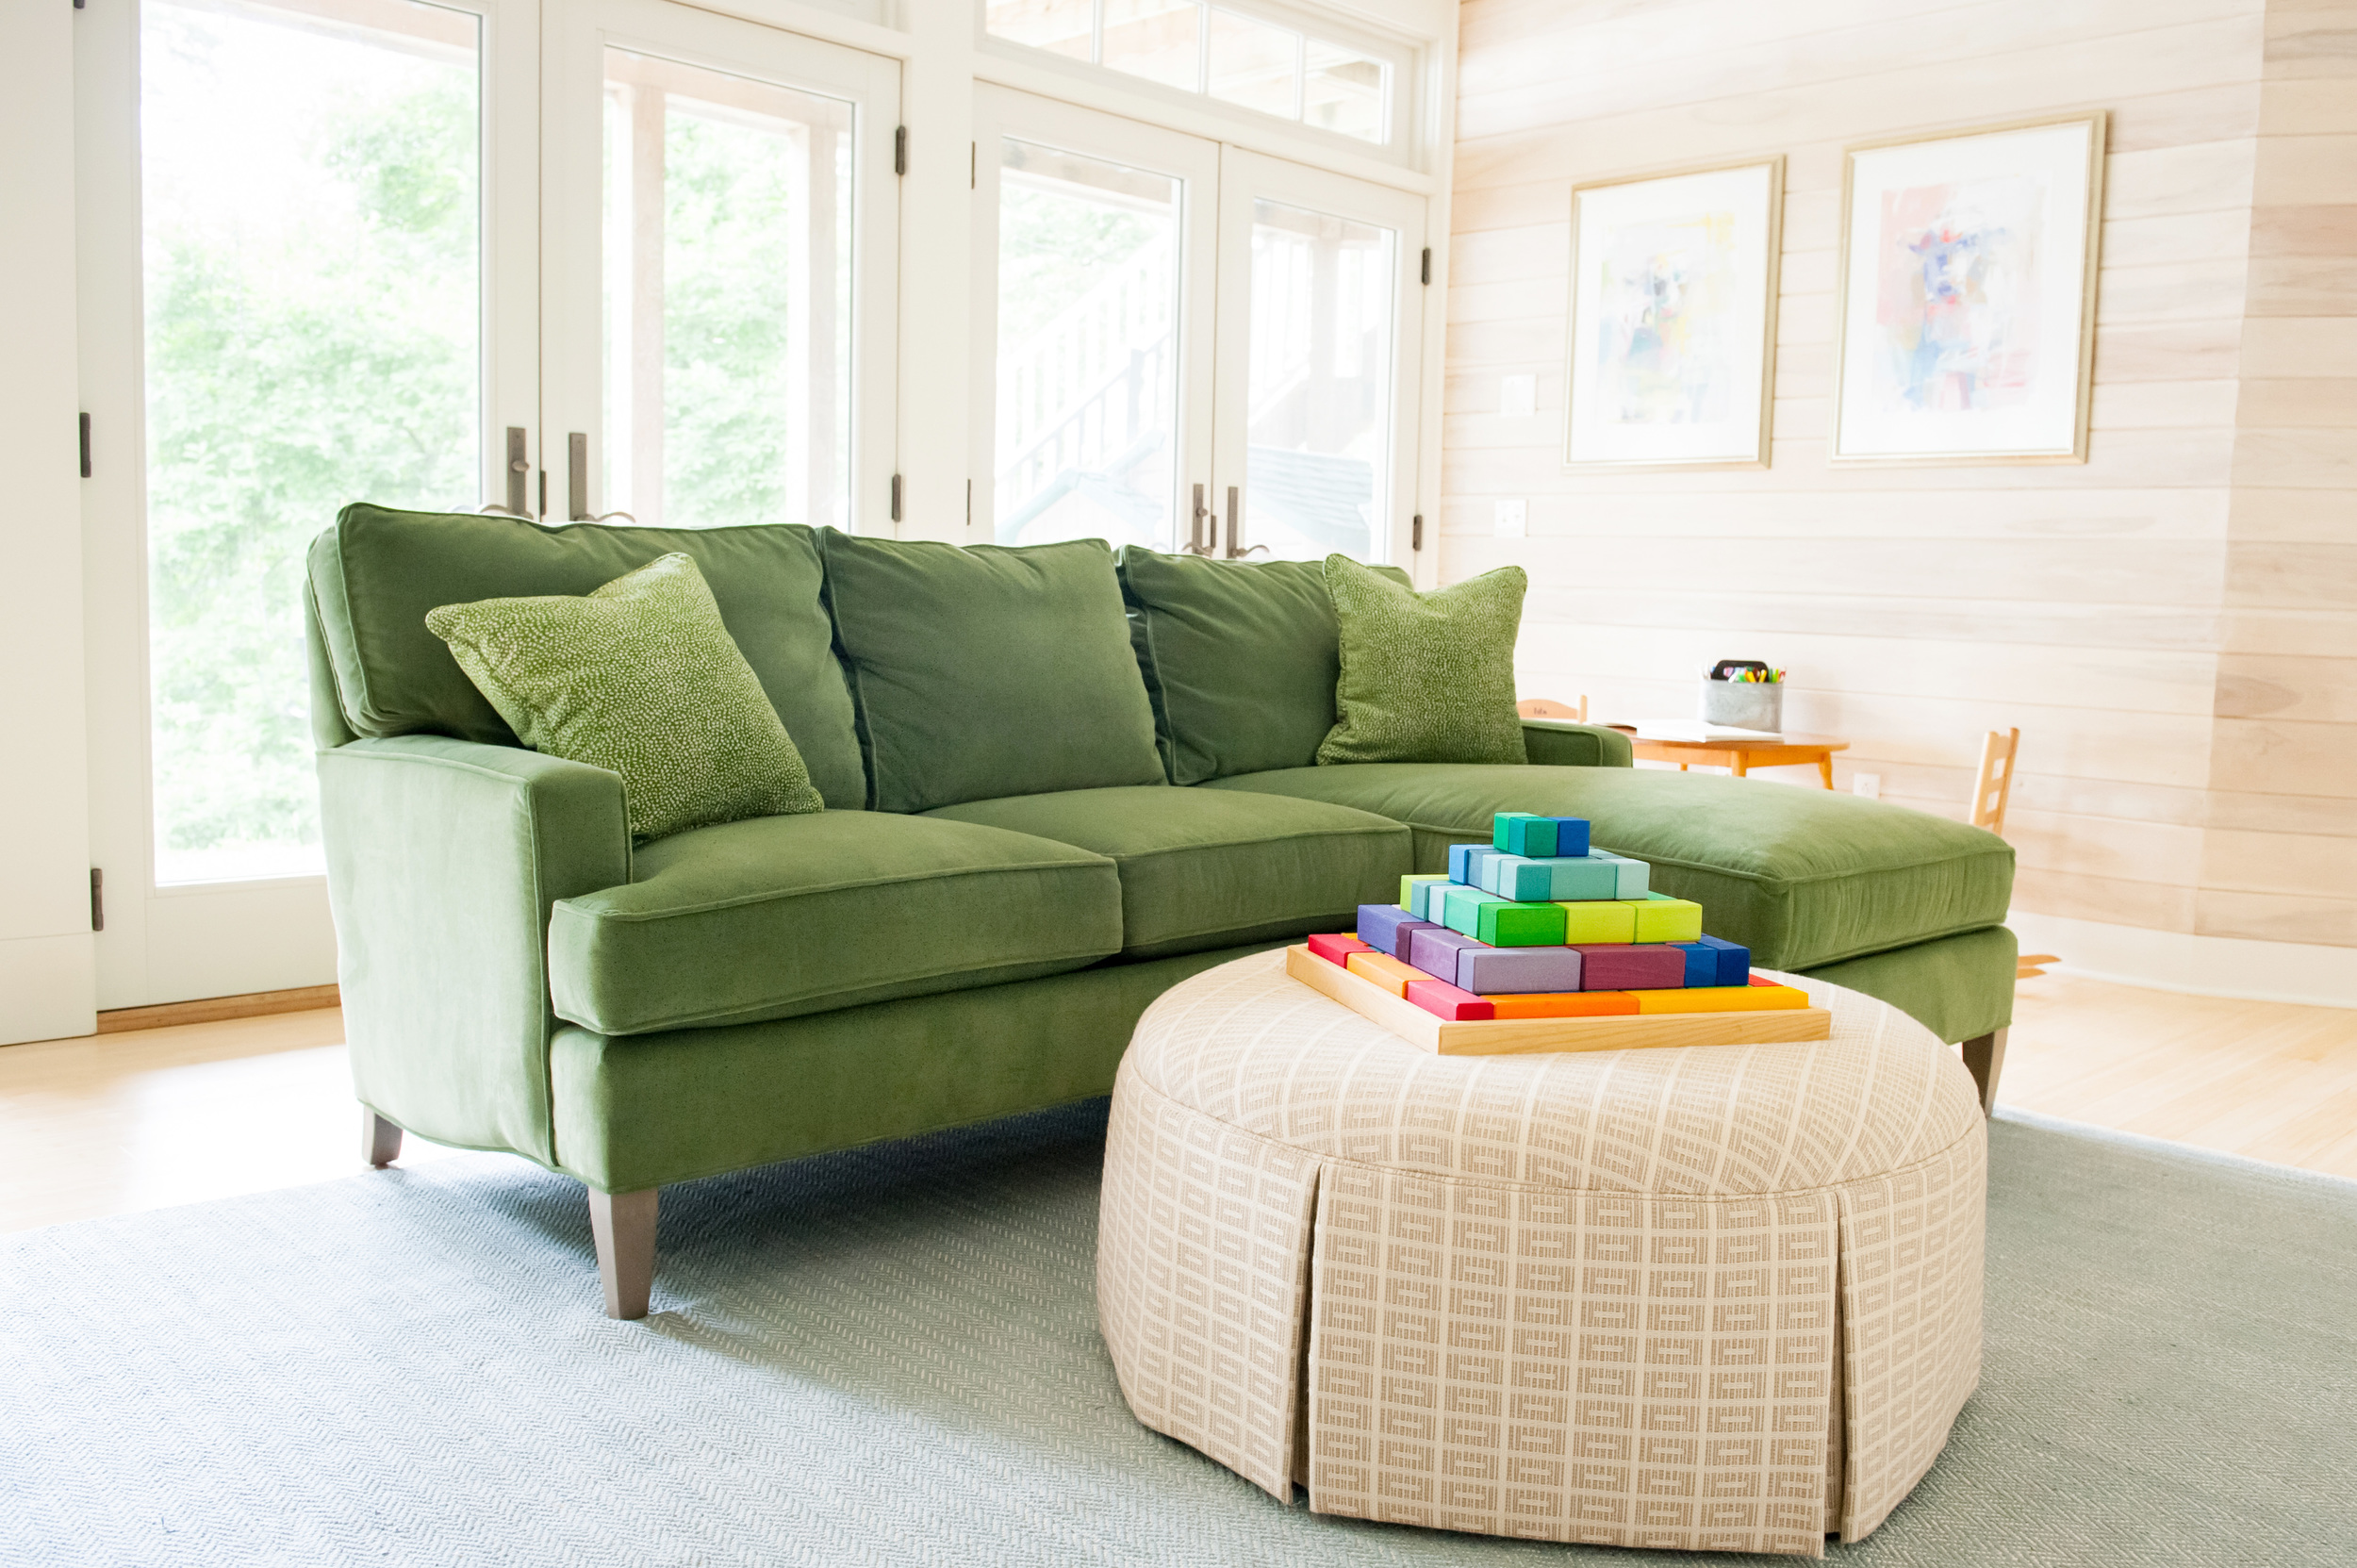 green_couch_and_large_windows